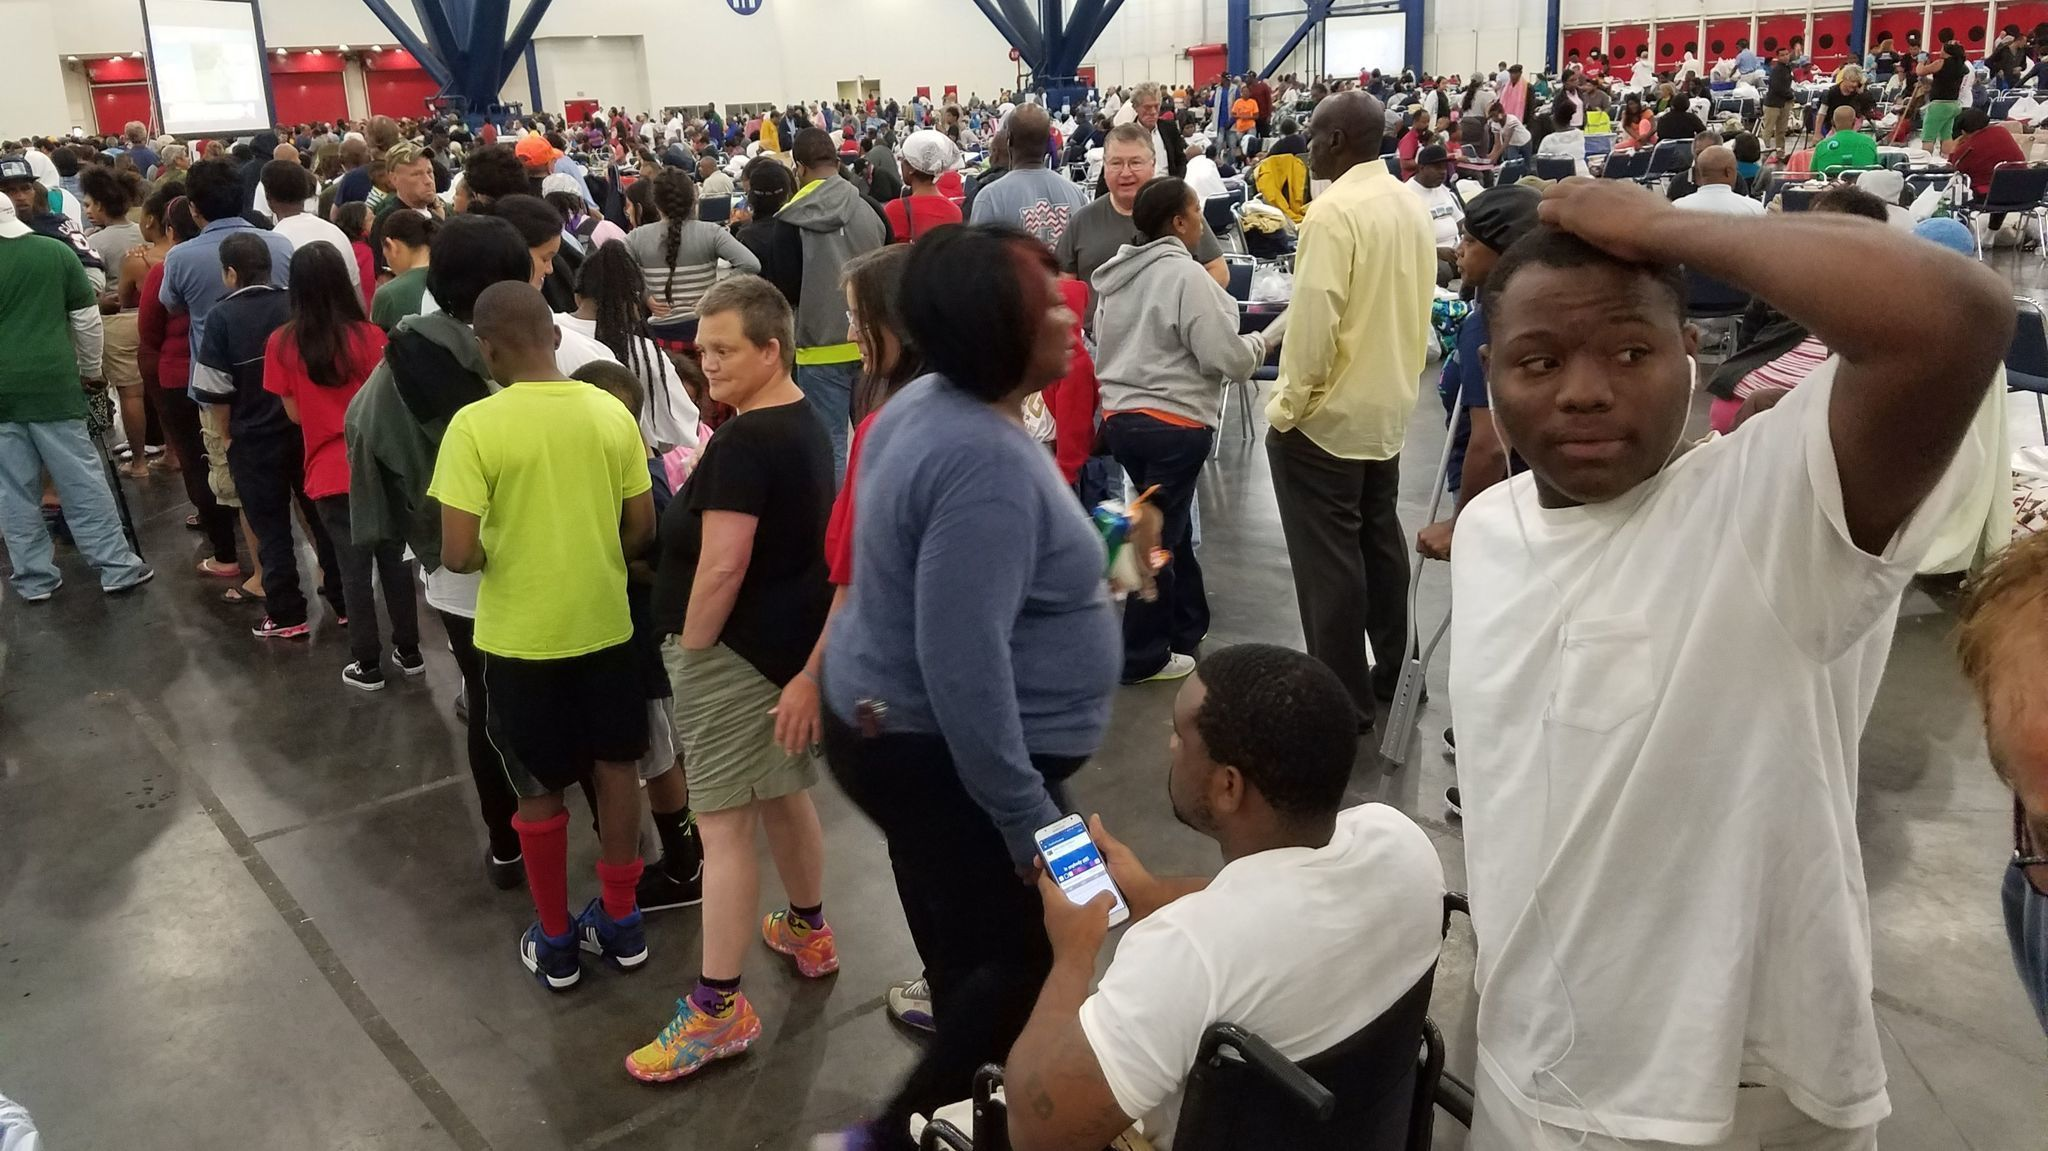 A 'crazy difficult' scene at the Houston convention center as thousands of flood victims jostle for shelter - LA Times